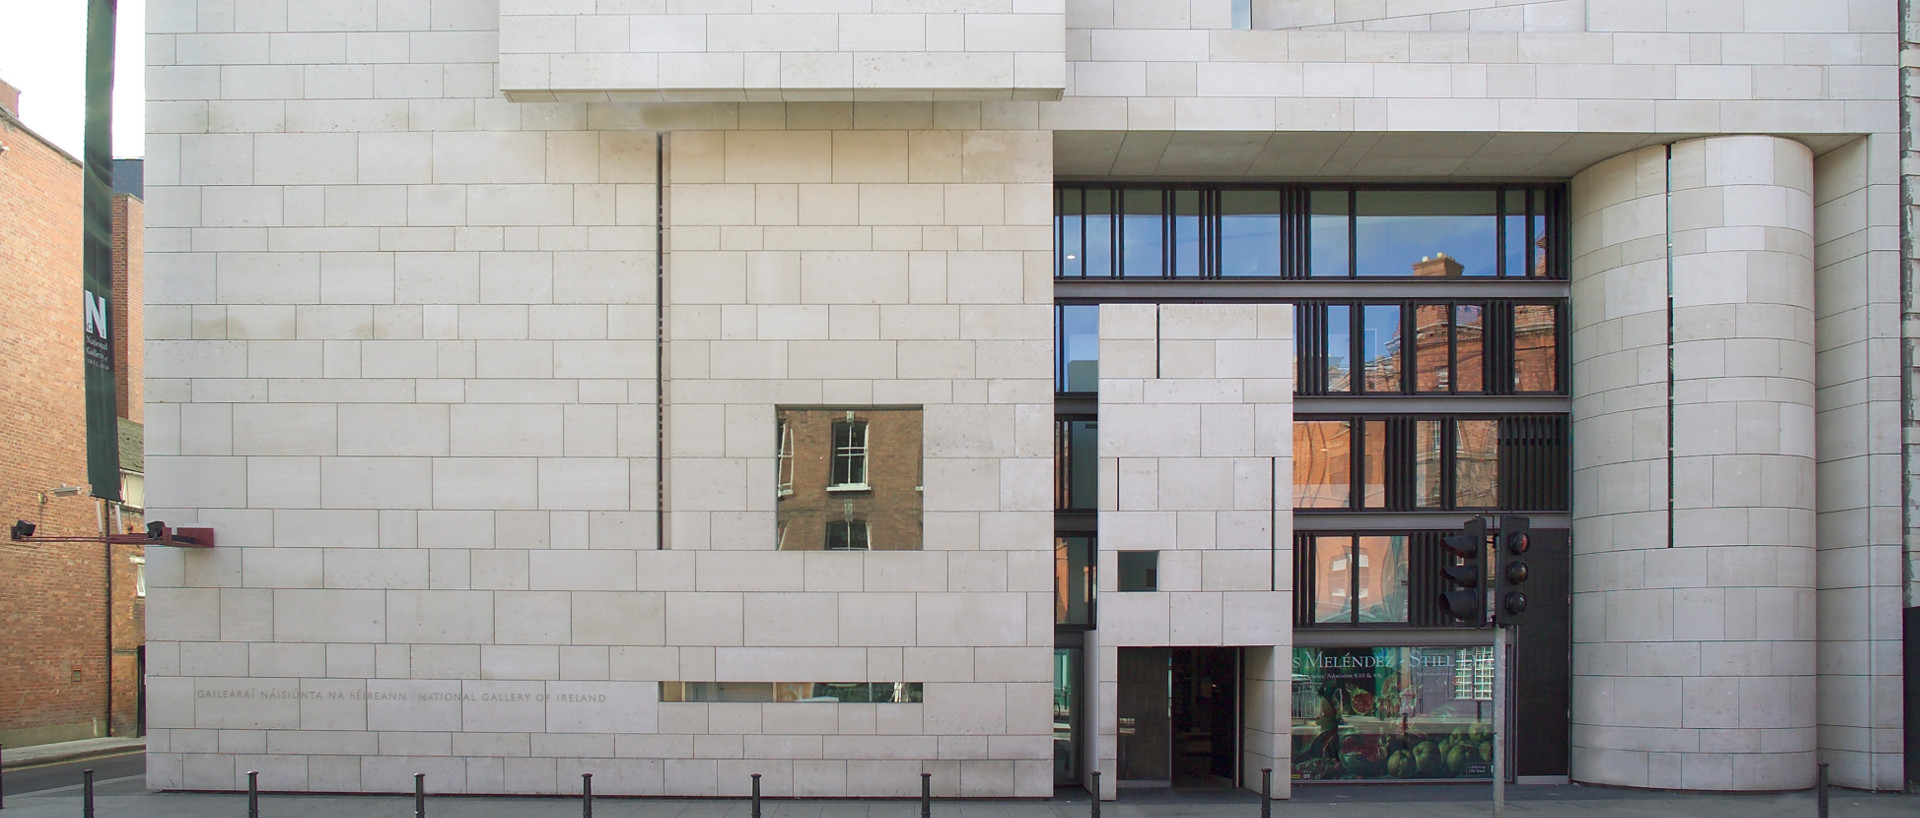 The exterior of the  National Gallery of Ireland